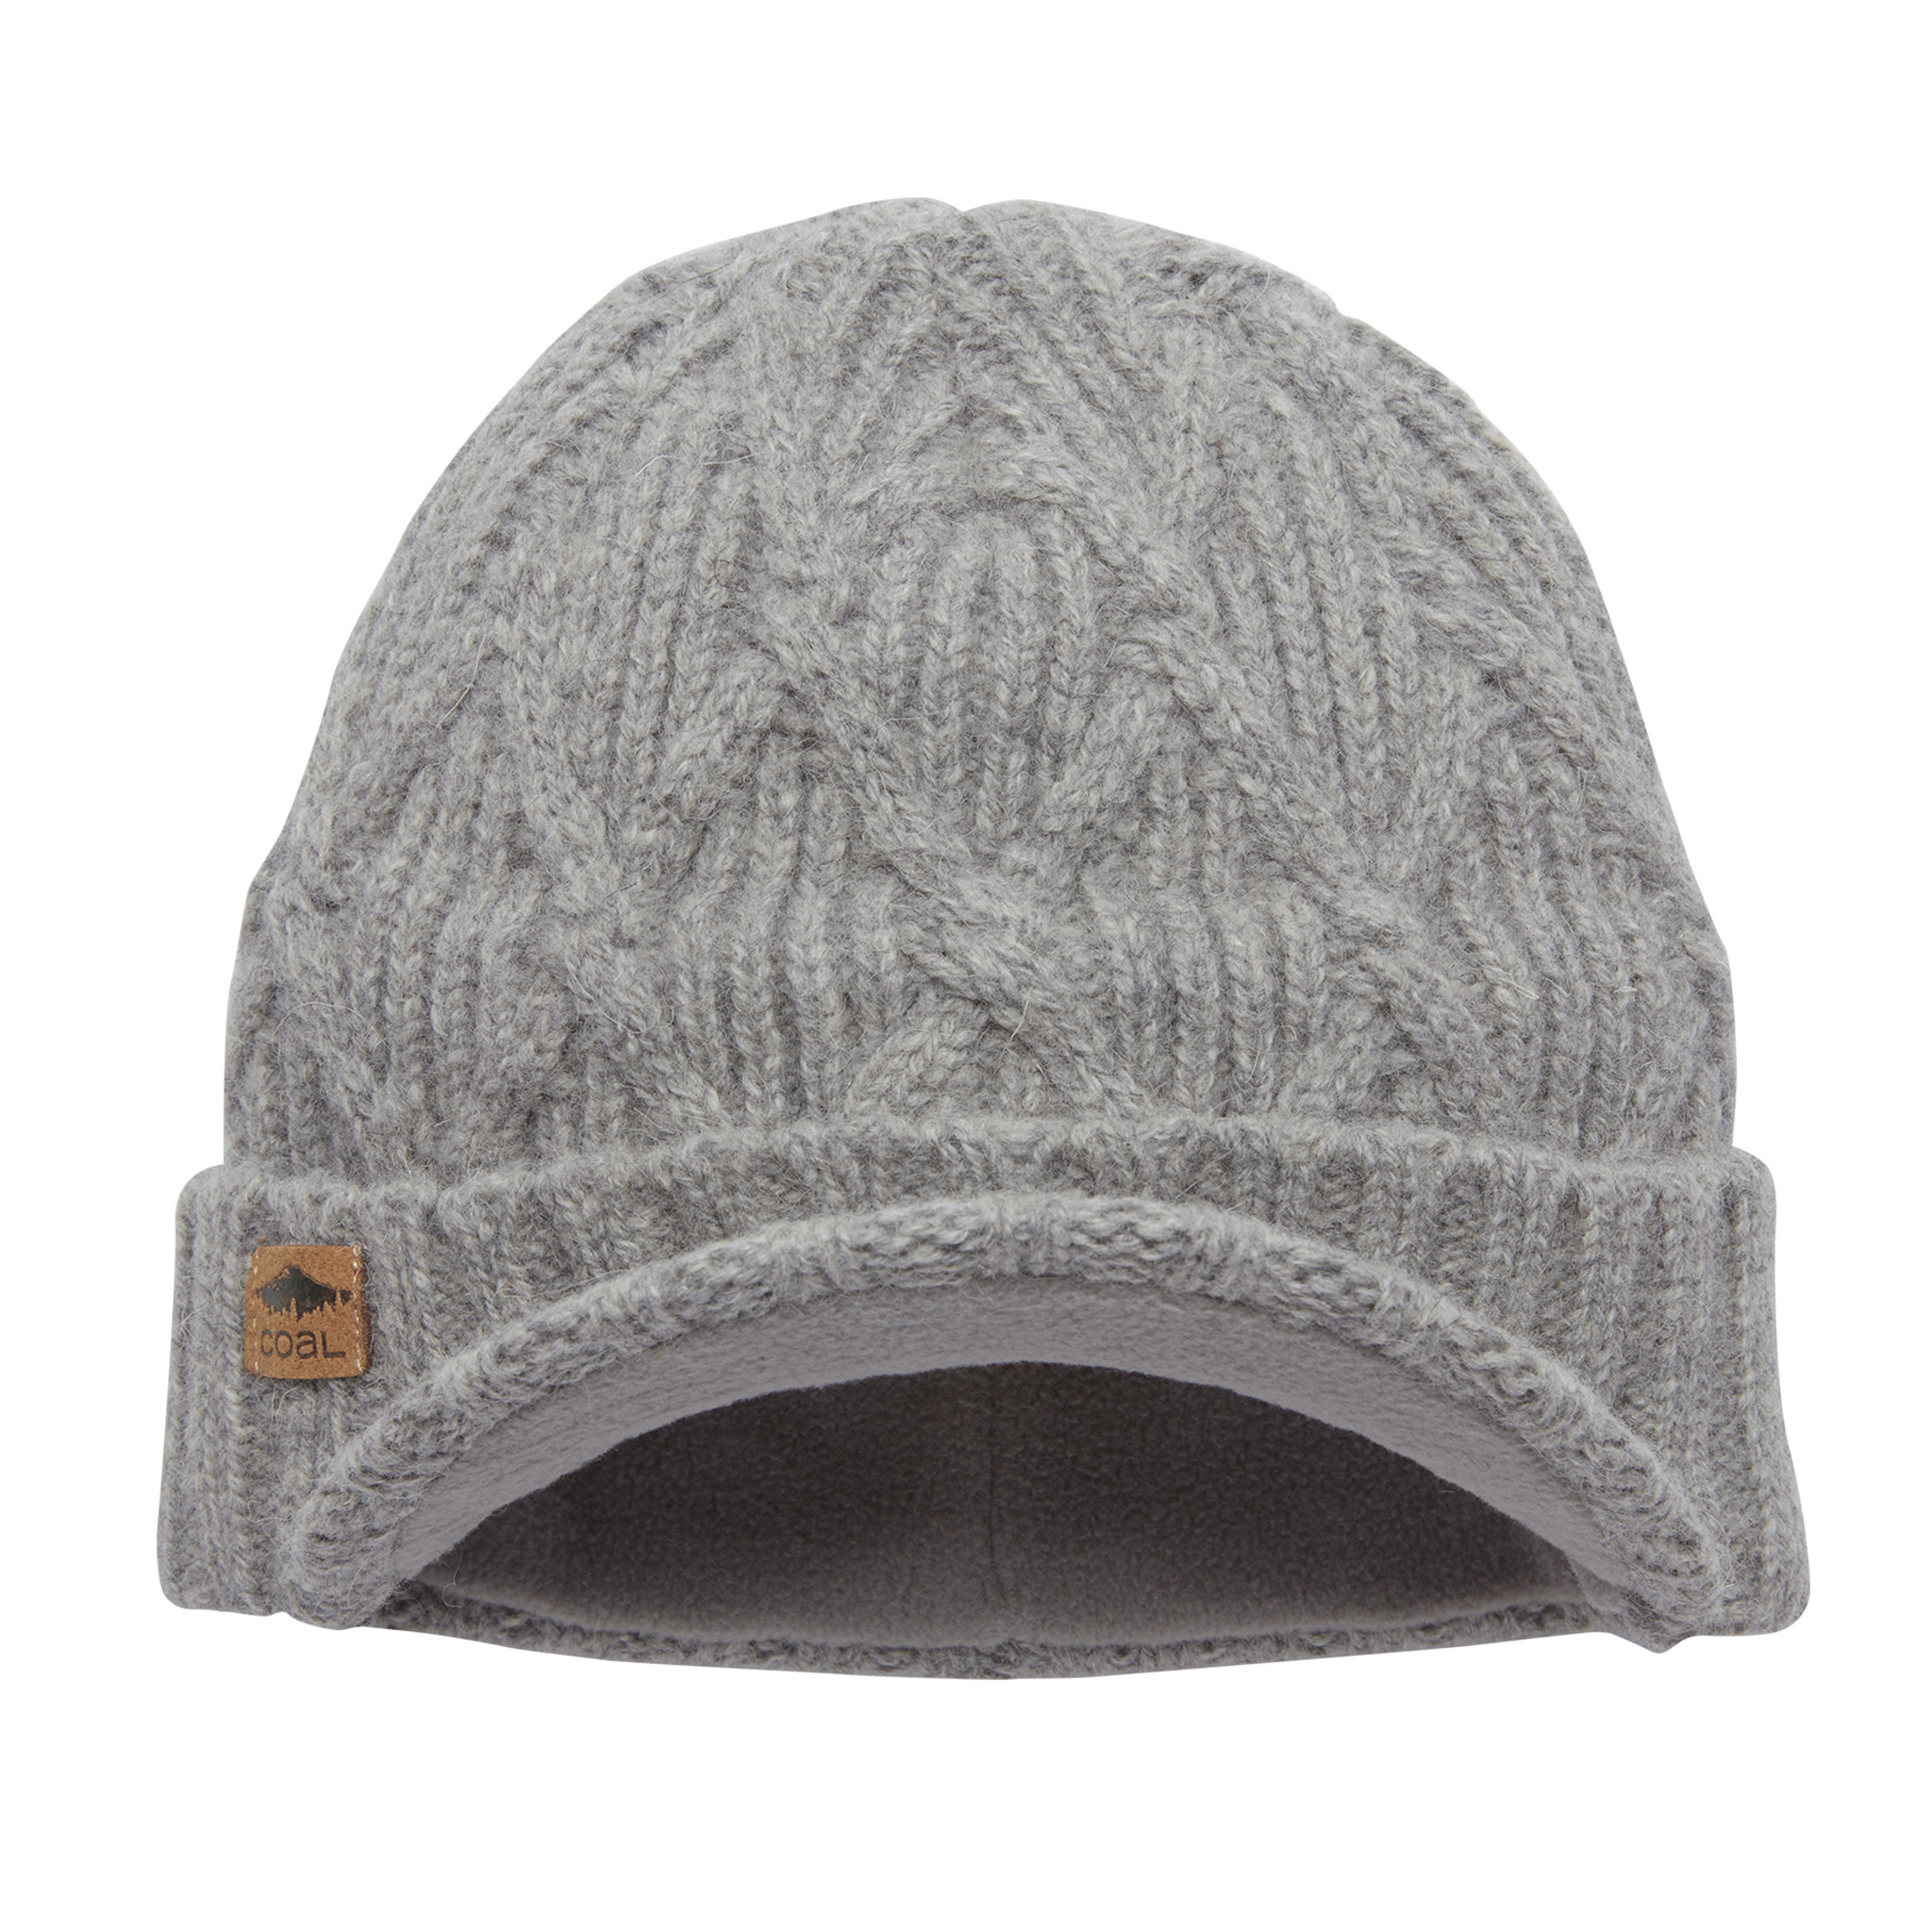 Coal Coal The Yukon Brim - Heather Grey